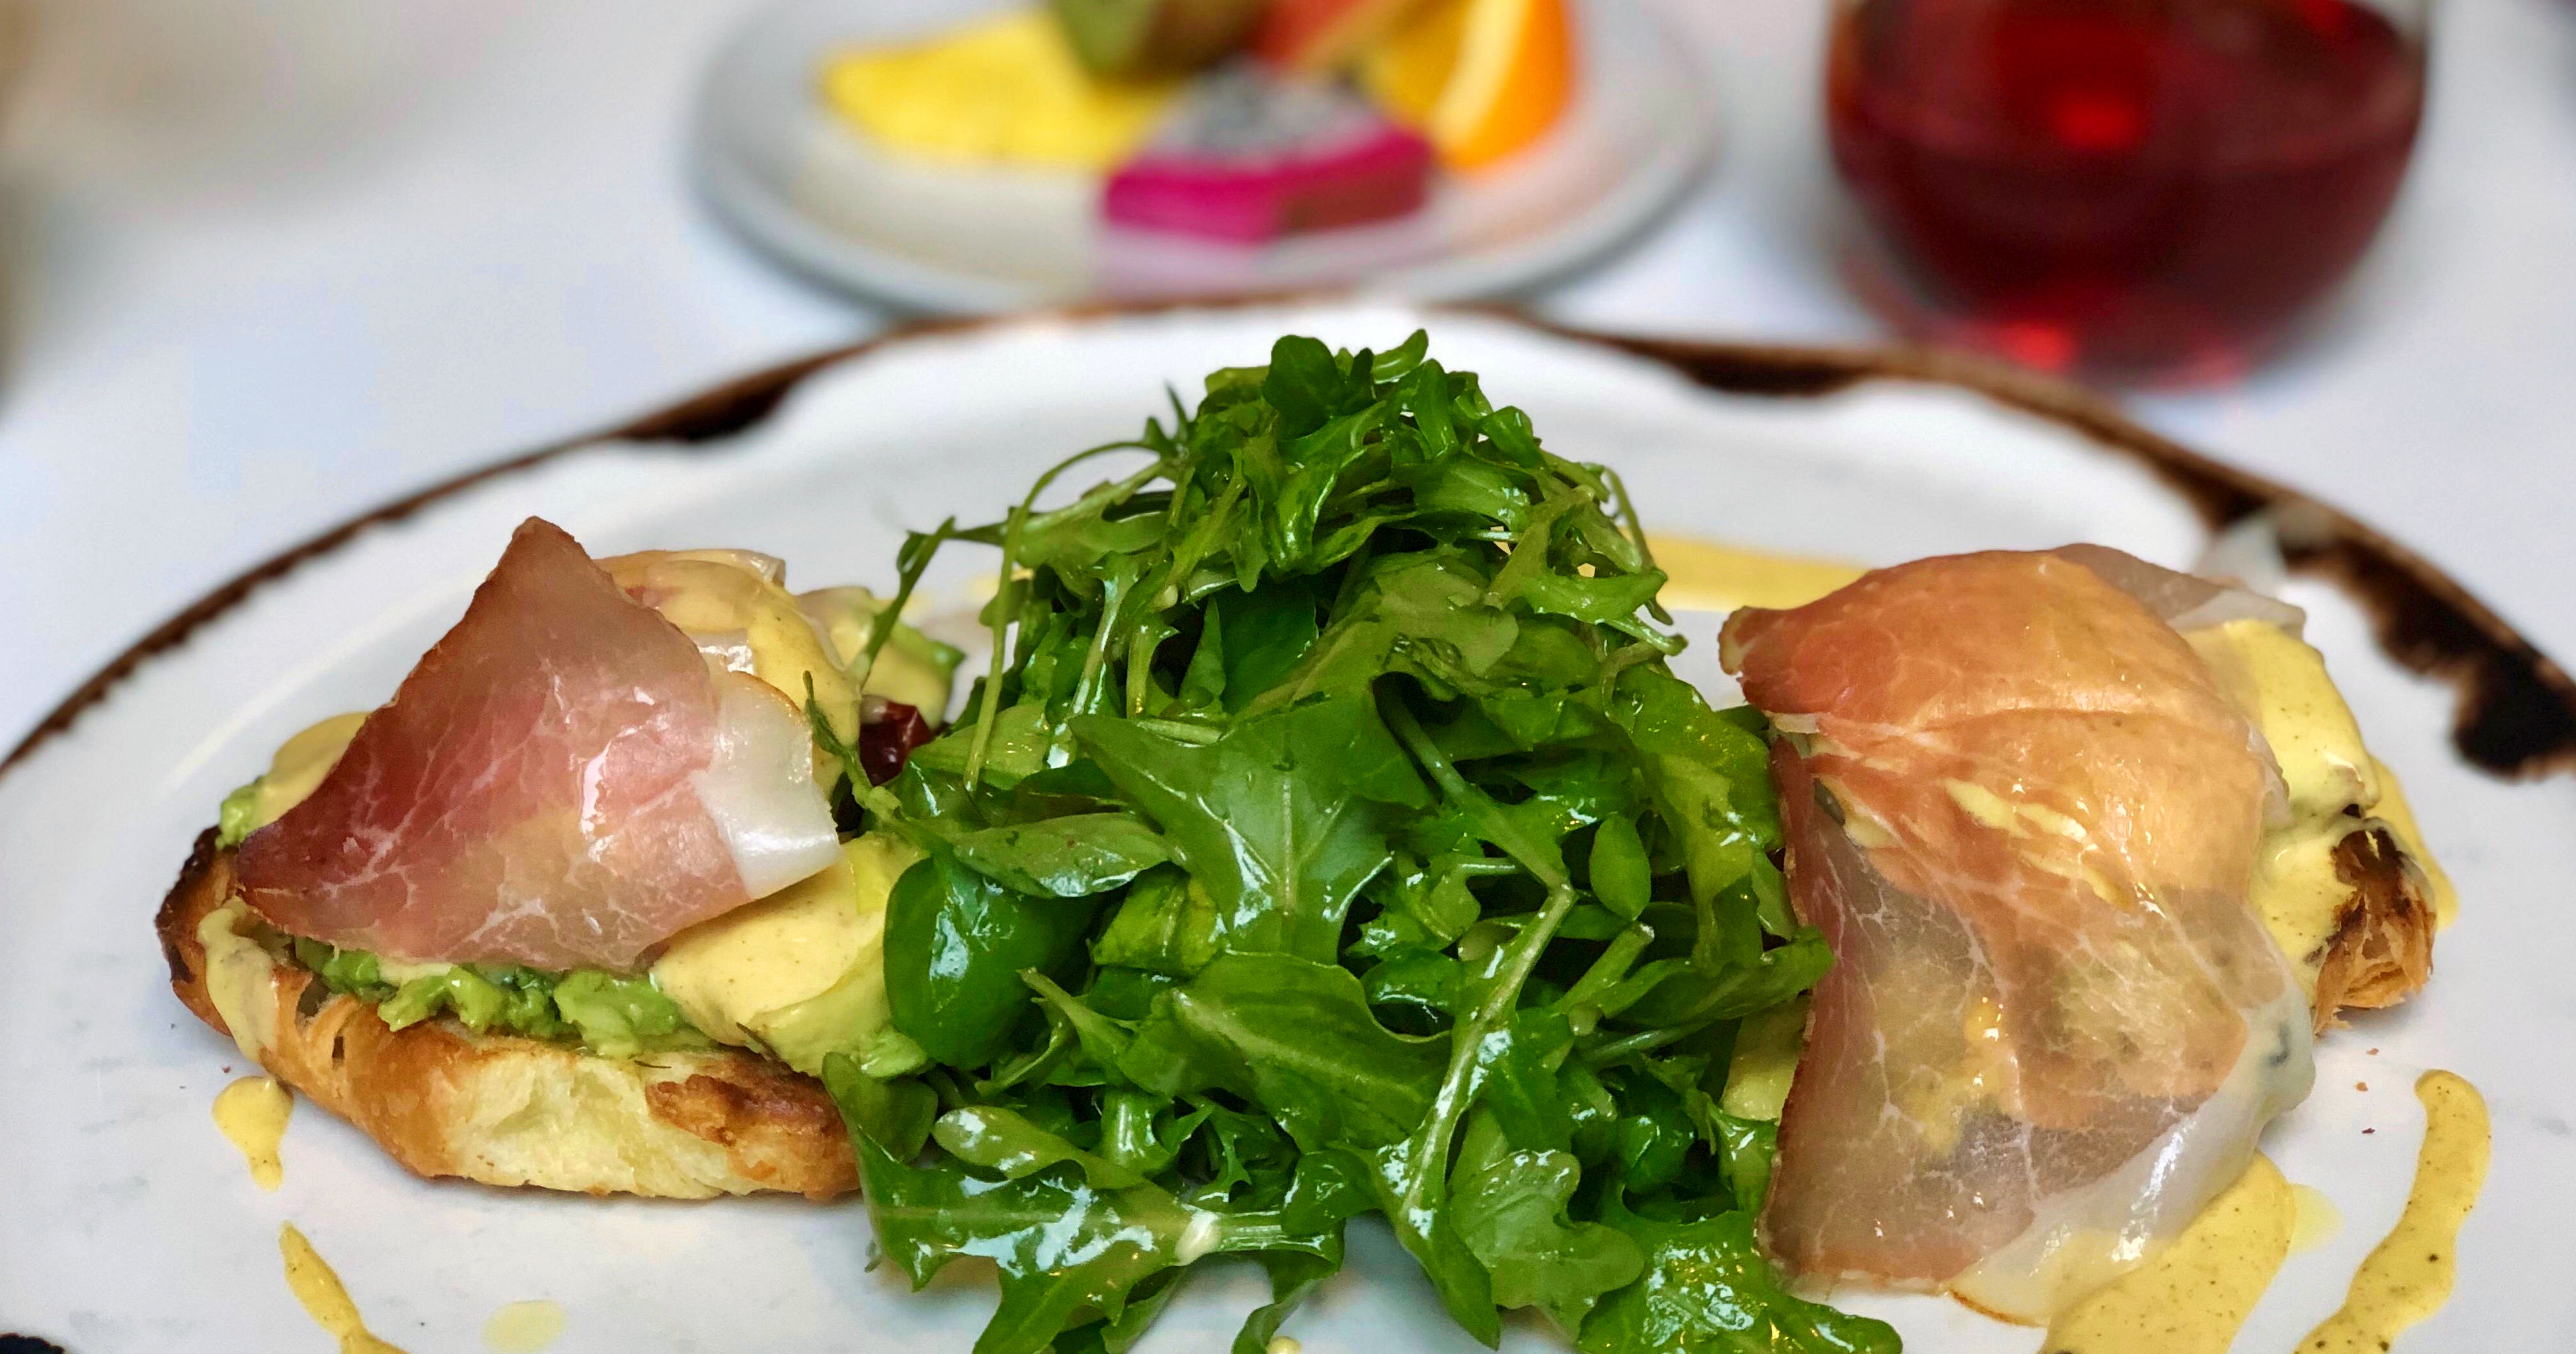 OEB Smoked Boar Speck Benny with Arugula. Image Source: Tracy-Lynne MacLellan, JustWine  | Just Wine